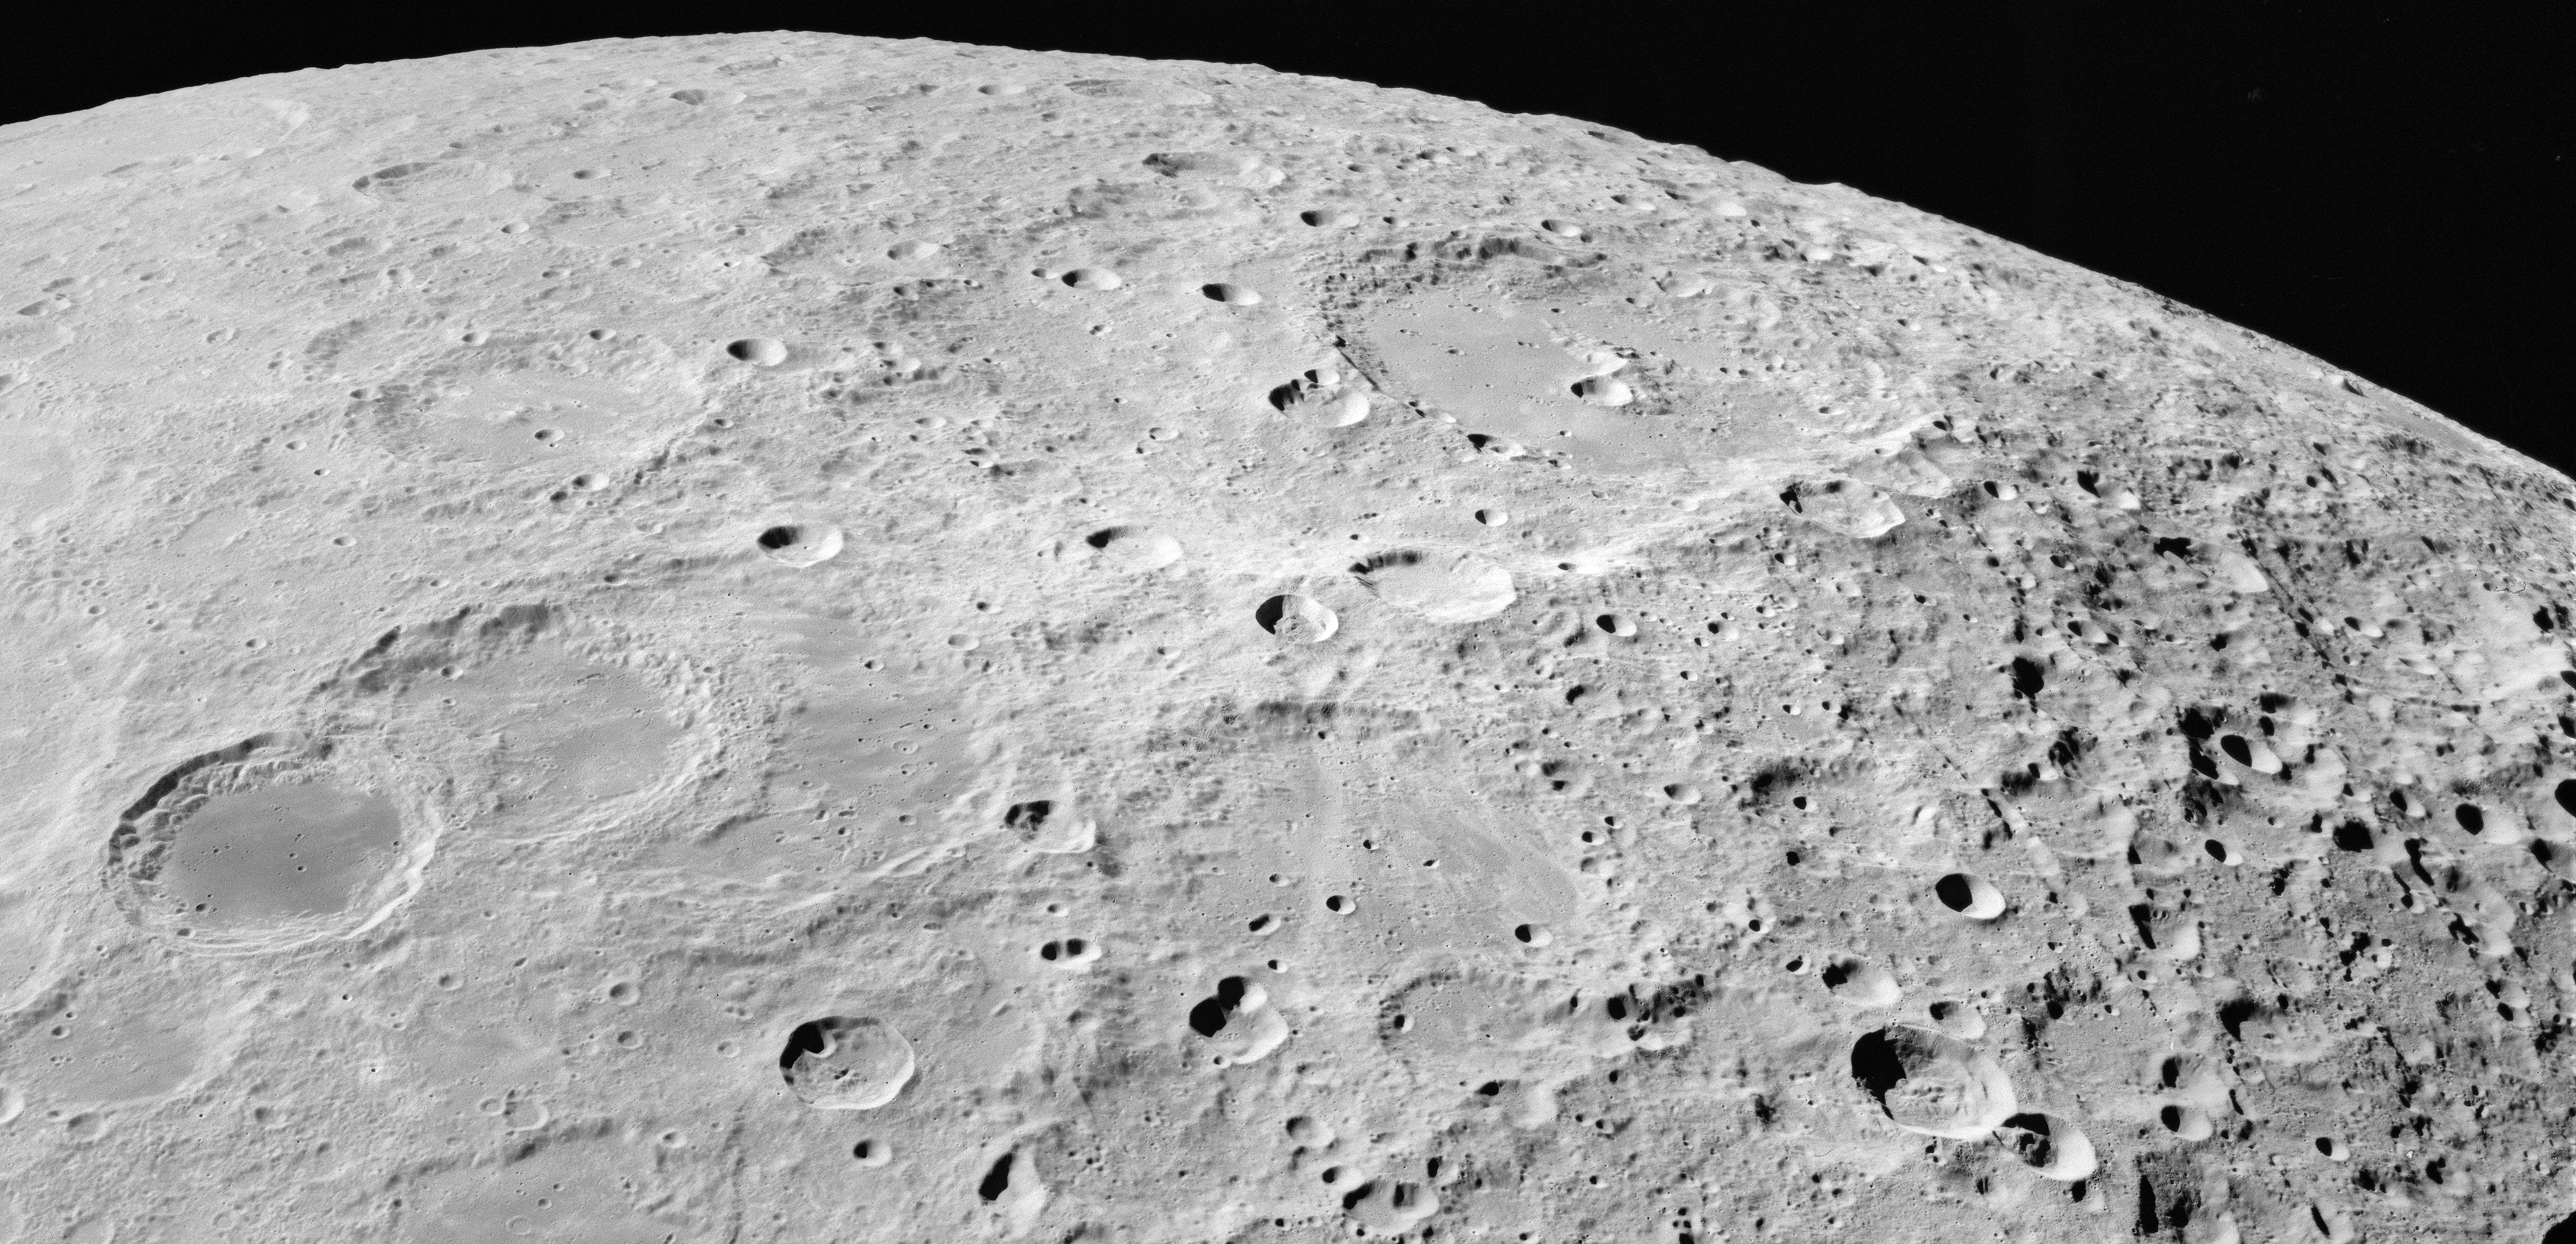 apollo 16 view of the moon centered on giordano bruno crater the